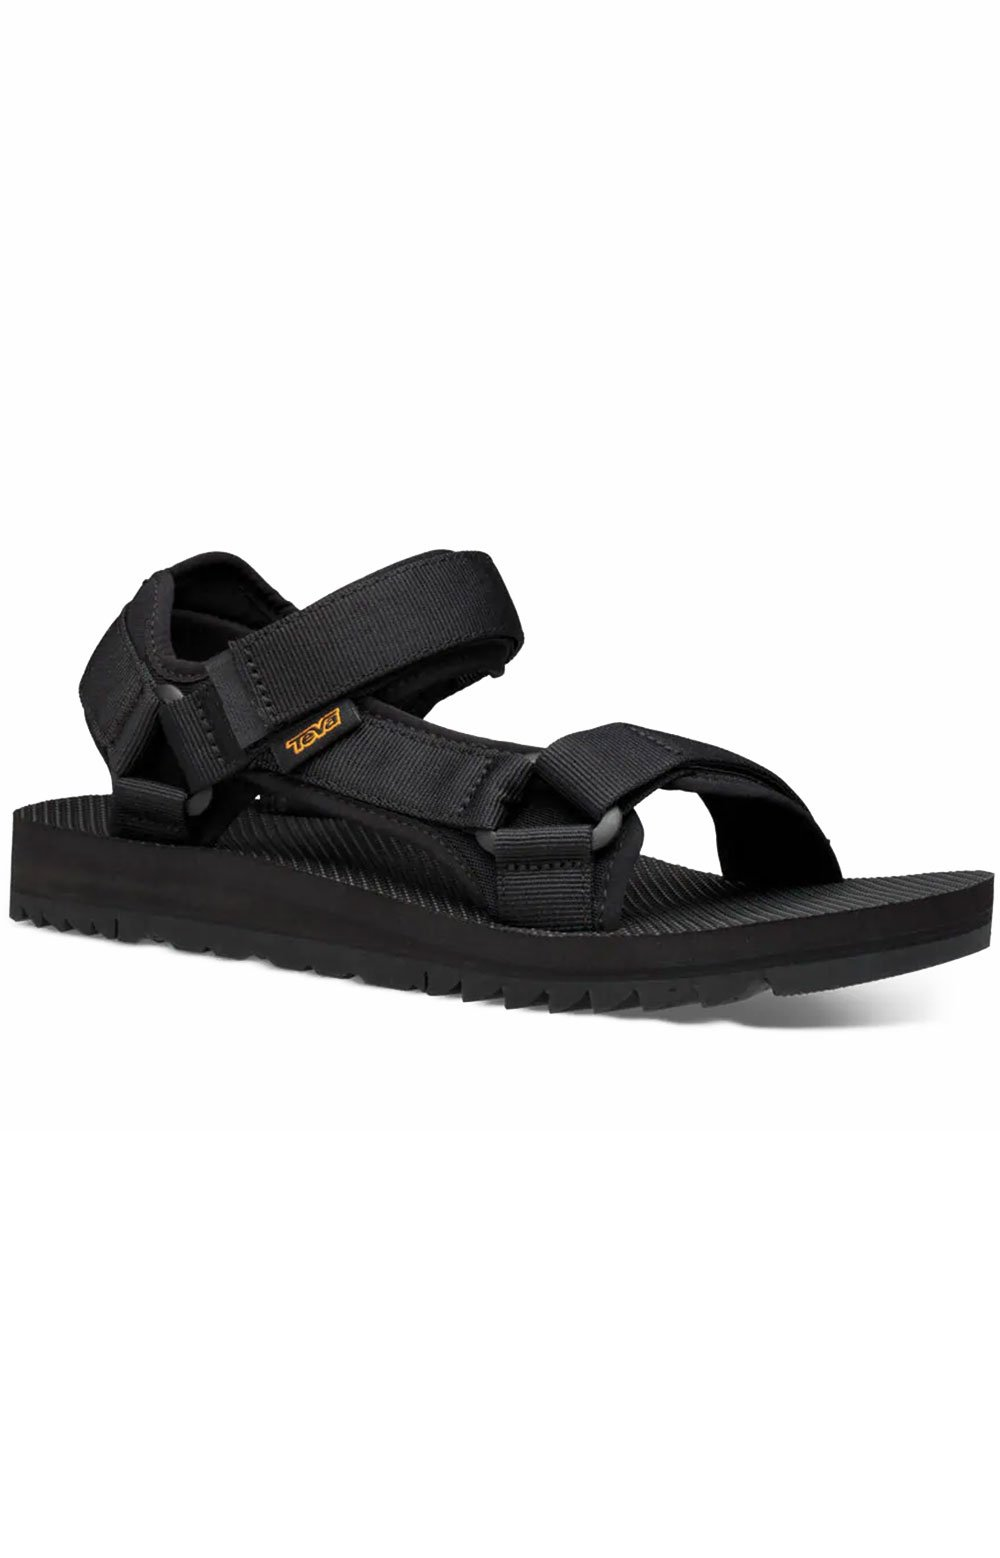 (1106786) Universal Trail Sandals - Pottery Black/Taupe